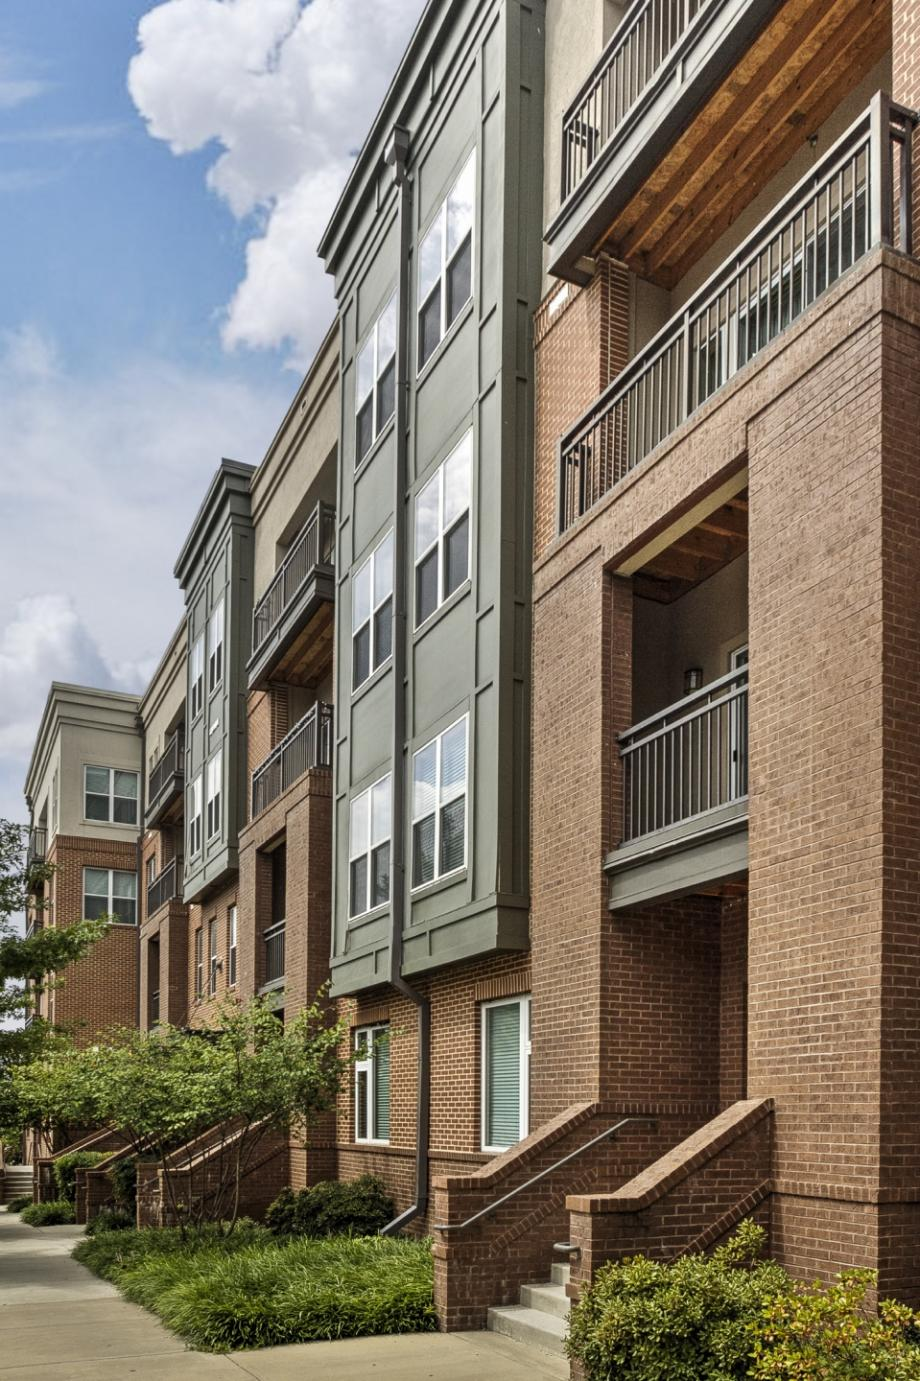 1 2 Bedroom Apartments In College Park Md Camden College Park